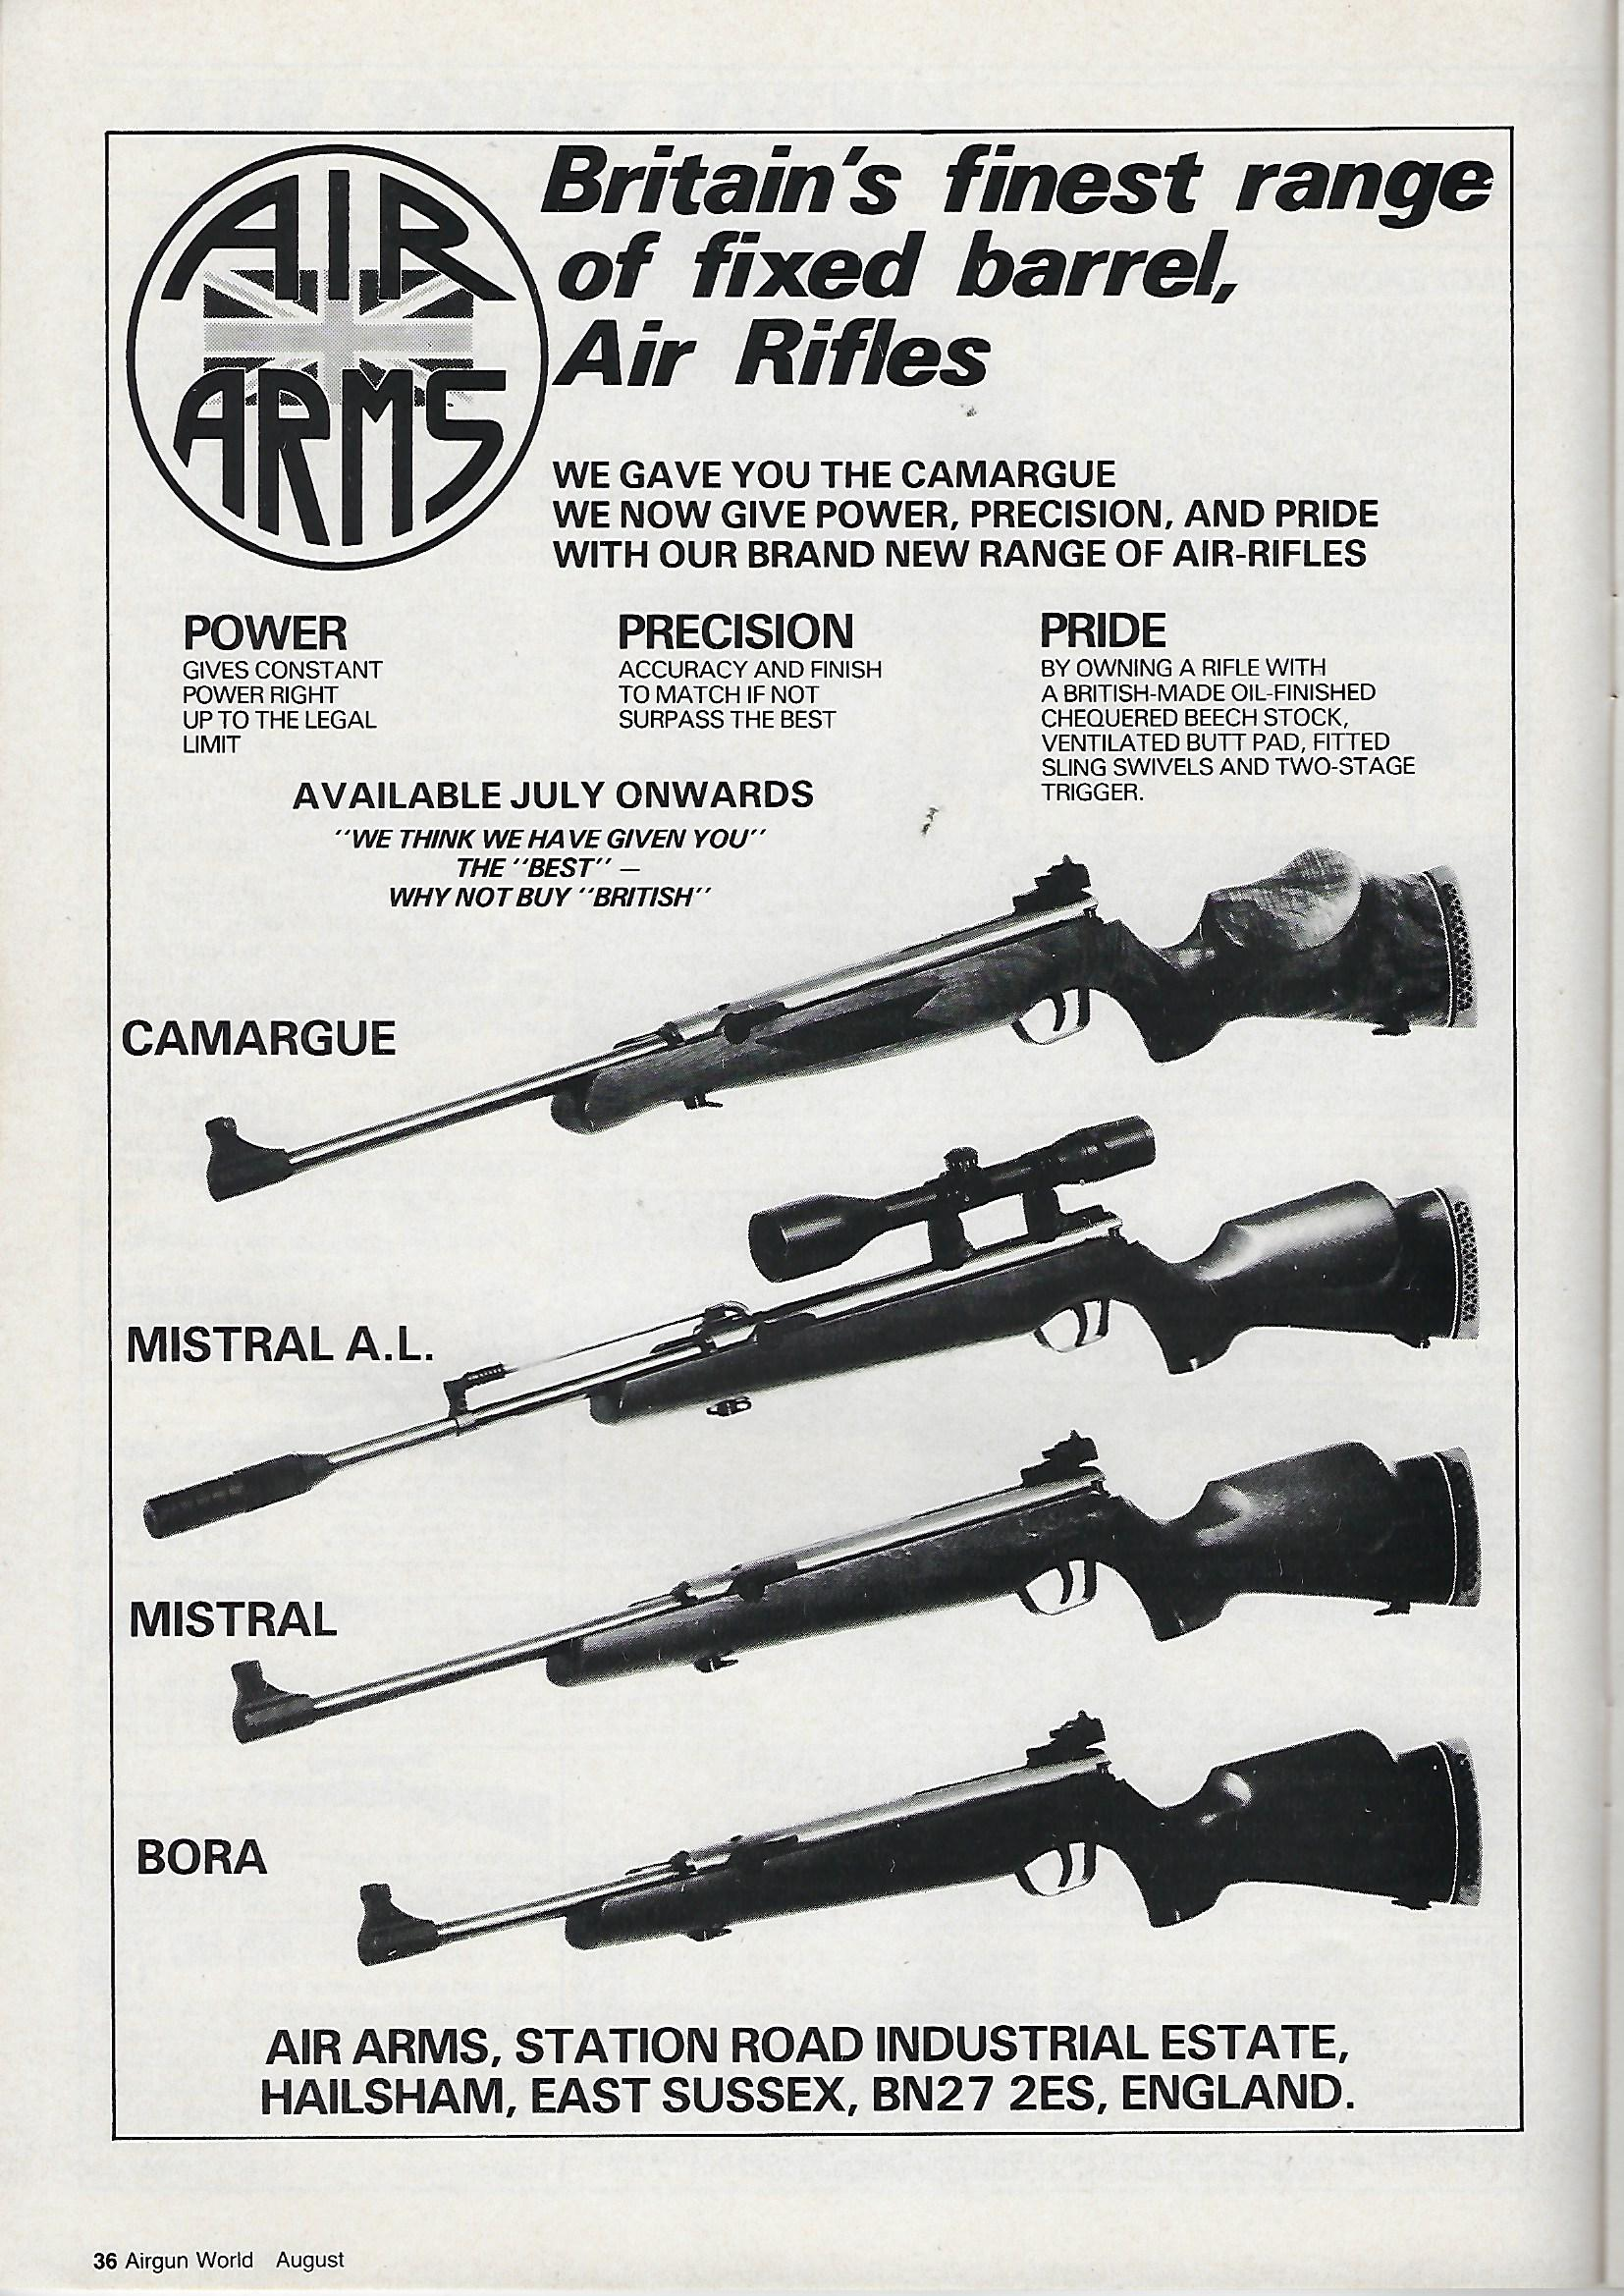 AGW - AUGUST 1985 - AIR ARMS AD.jpg